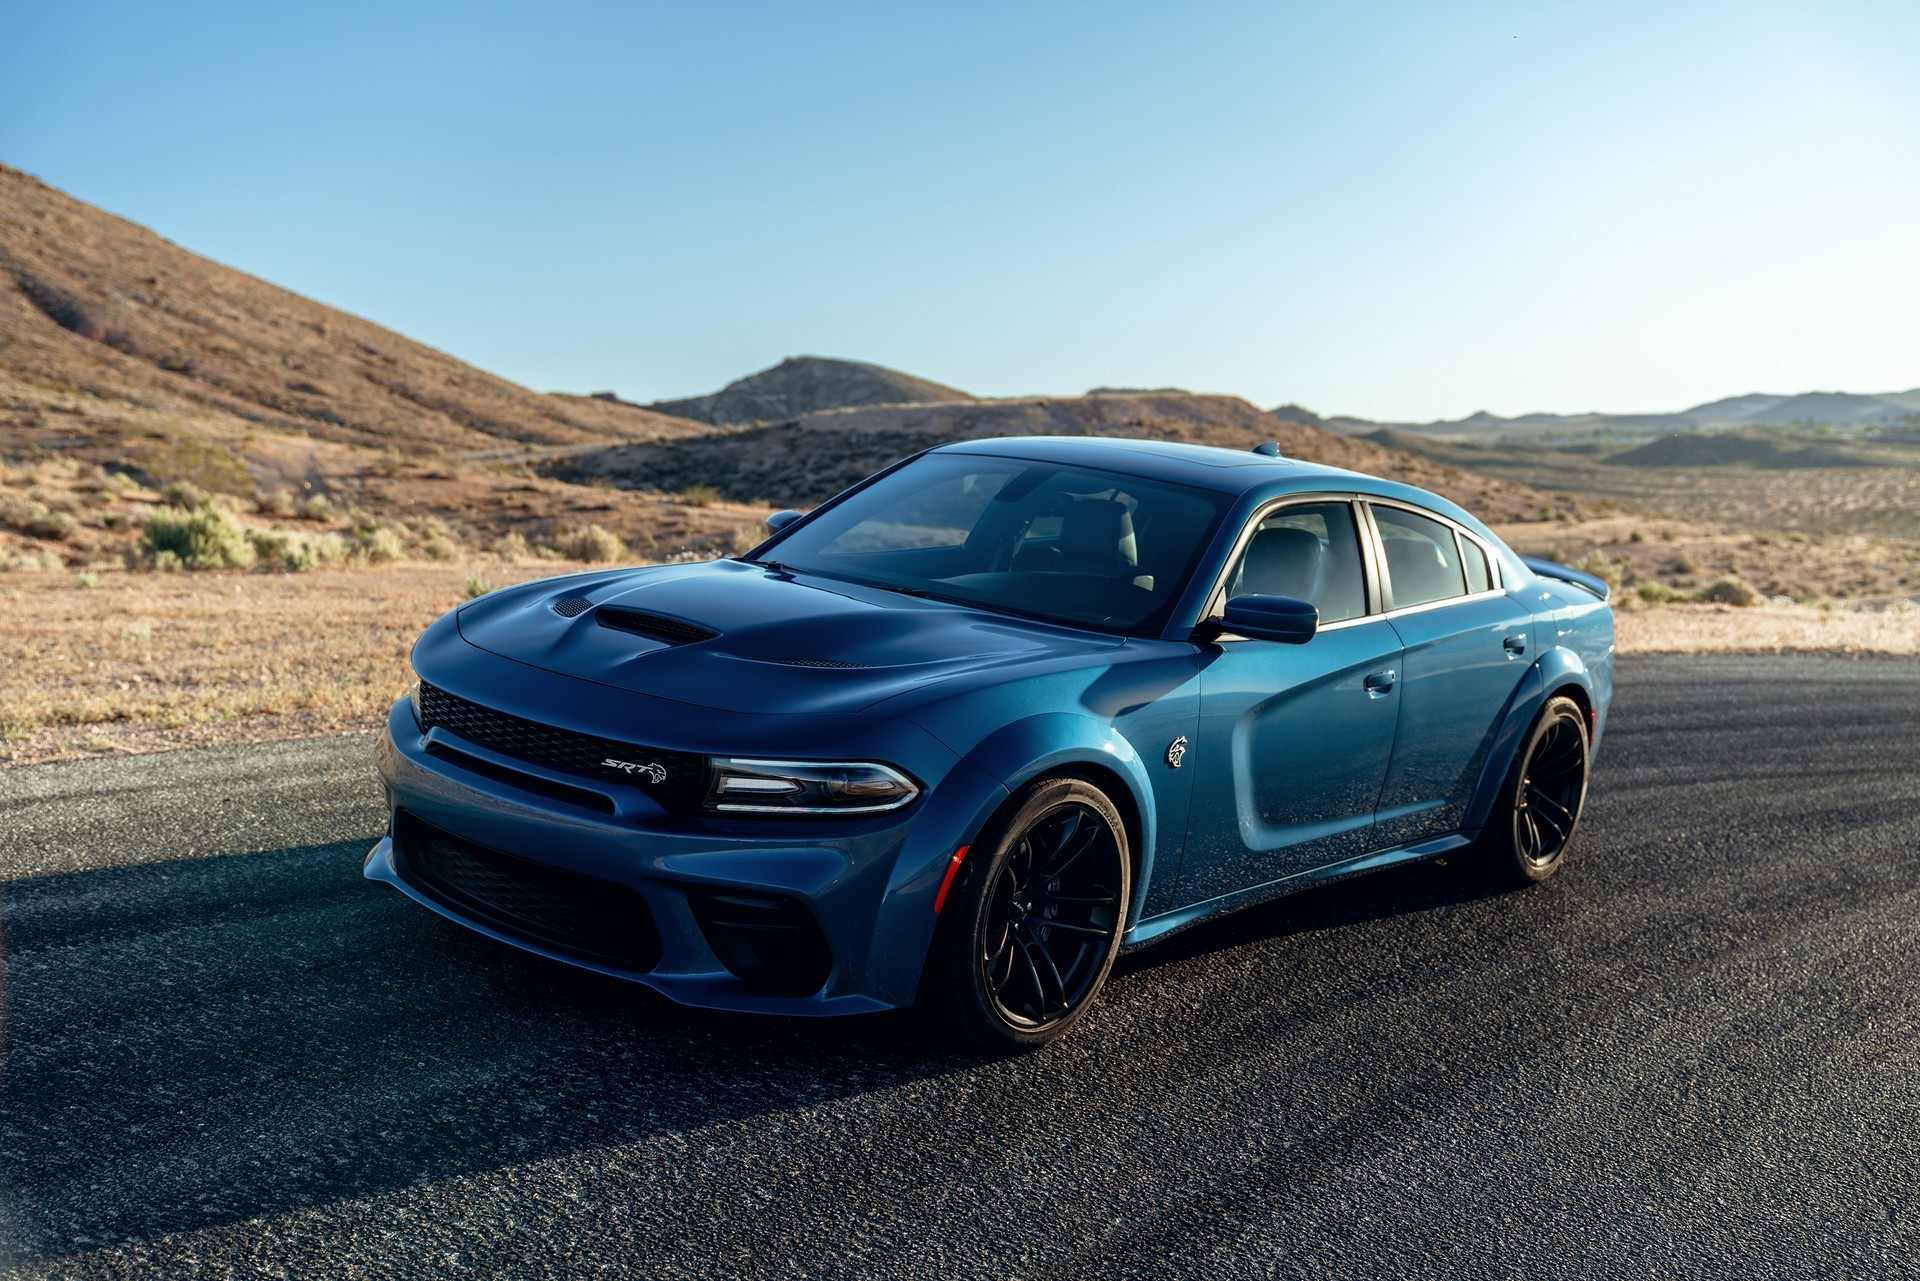 2020 Dodge Charger Hellcat Widebody Gets Full-Width Front ...